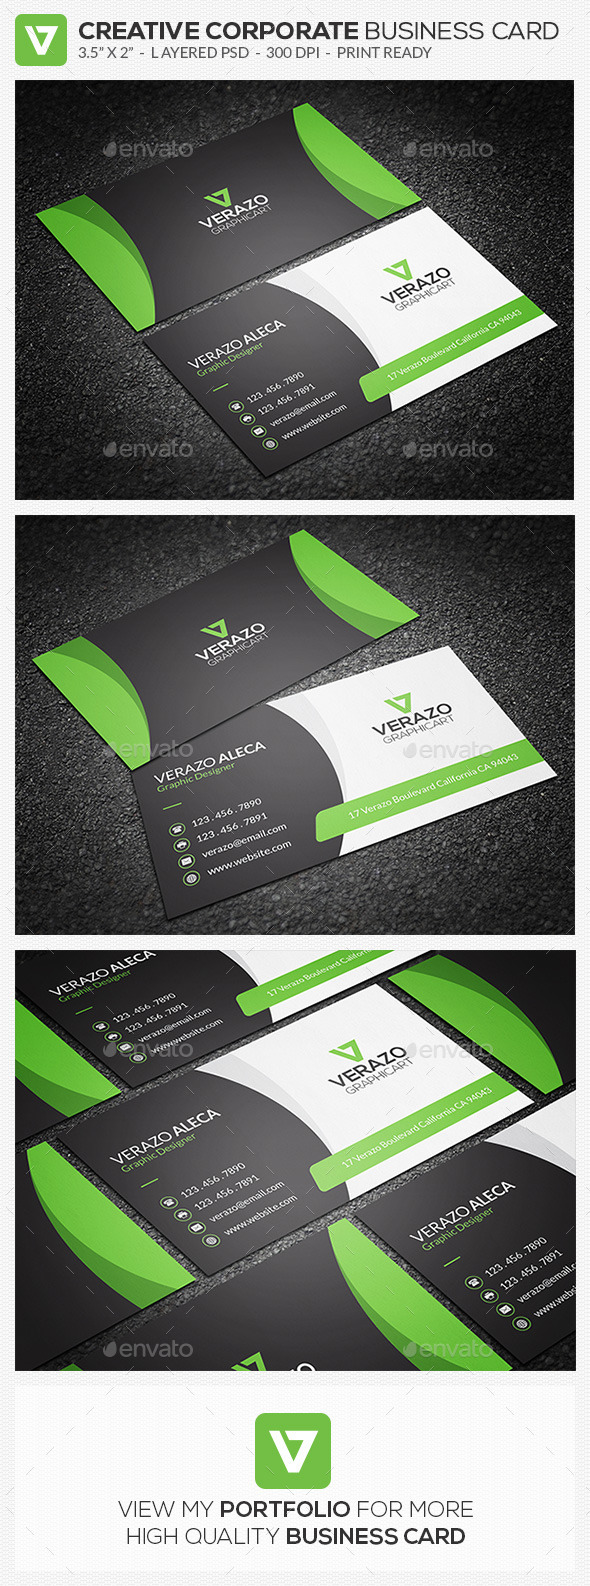 Creative Corporate Business Card 75